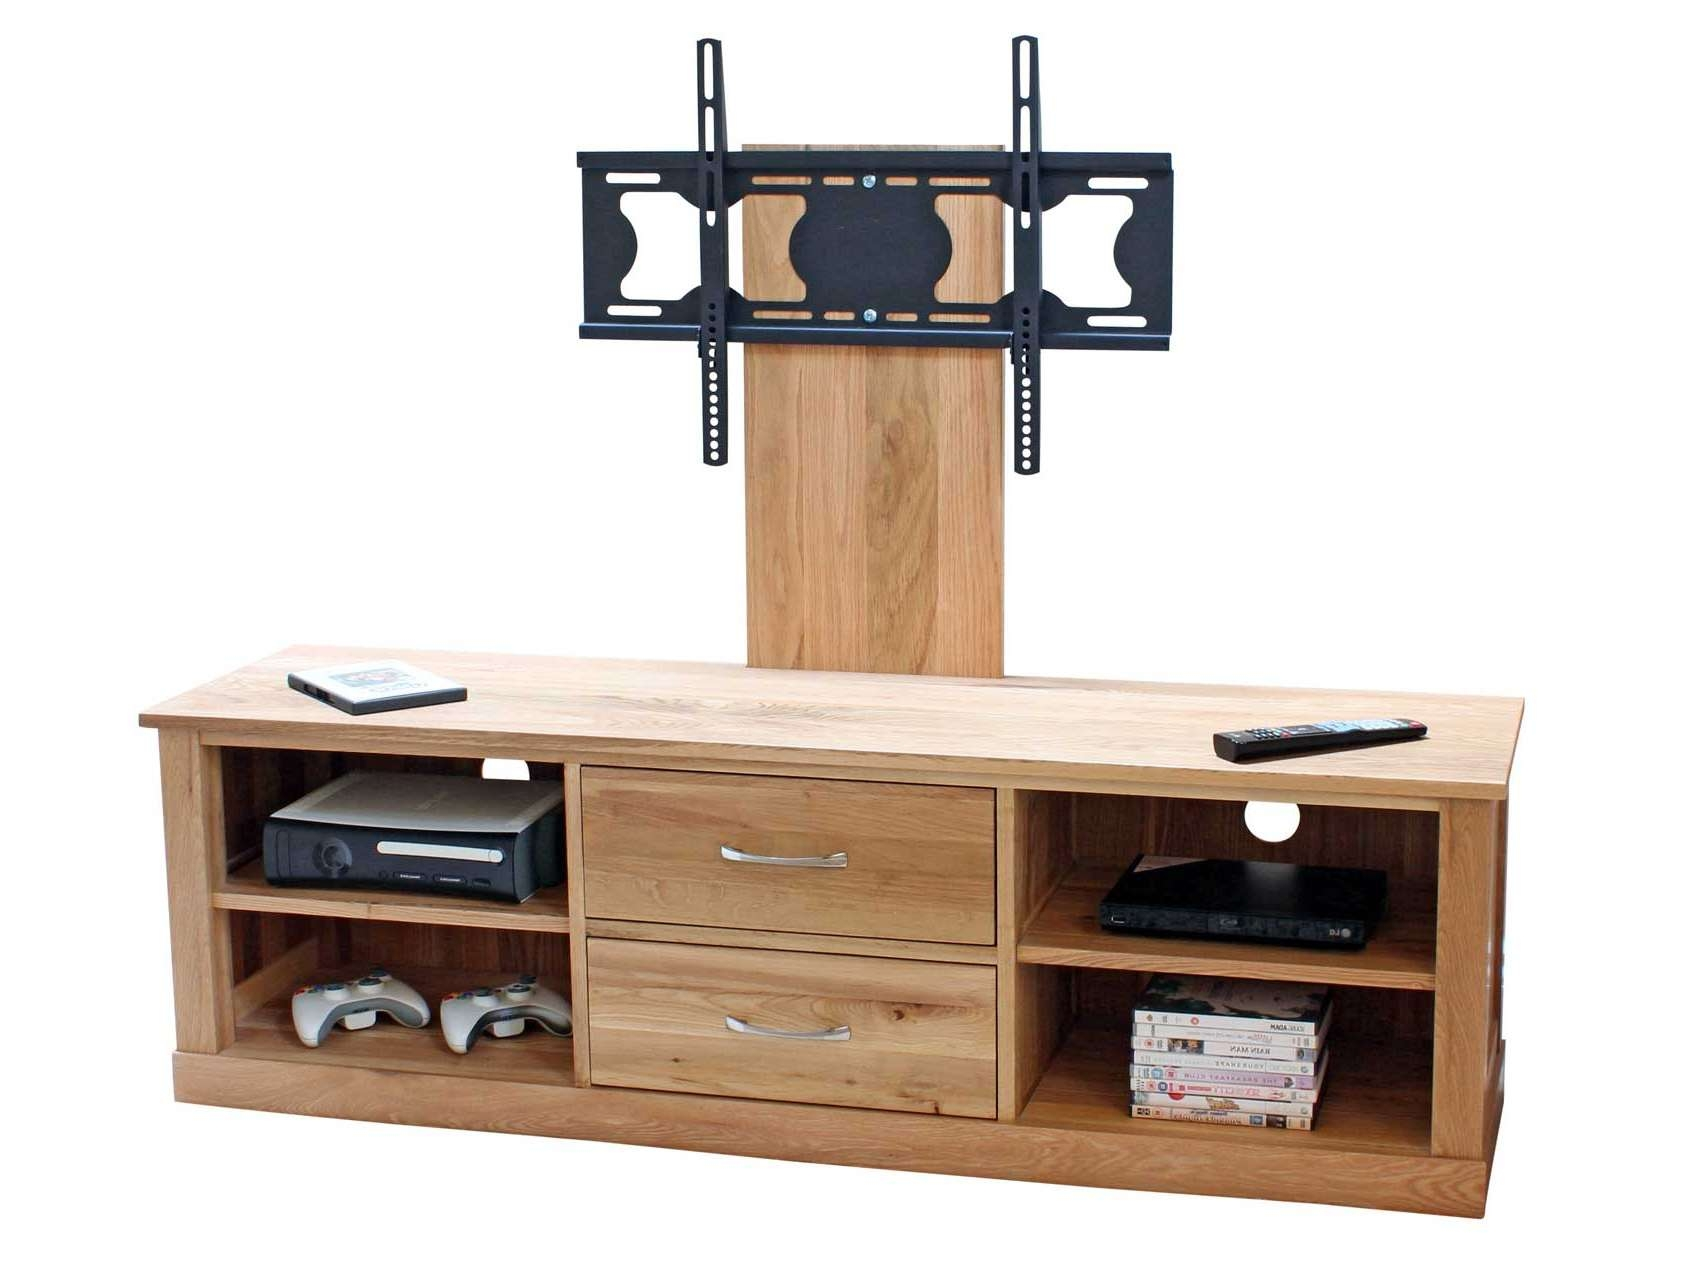 Classic Oak Television Unit With Mount Hampshire Furniture 3 Pertaining To Corner Oak Tv Stands For Flat Screen (View 13 of 15)